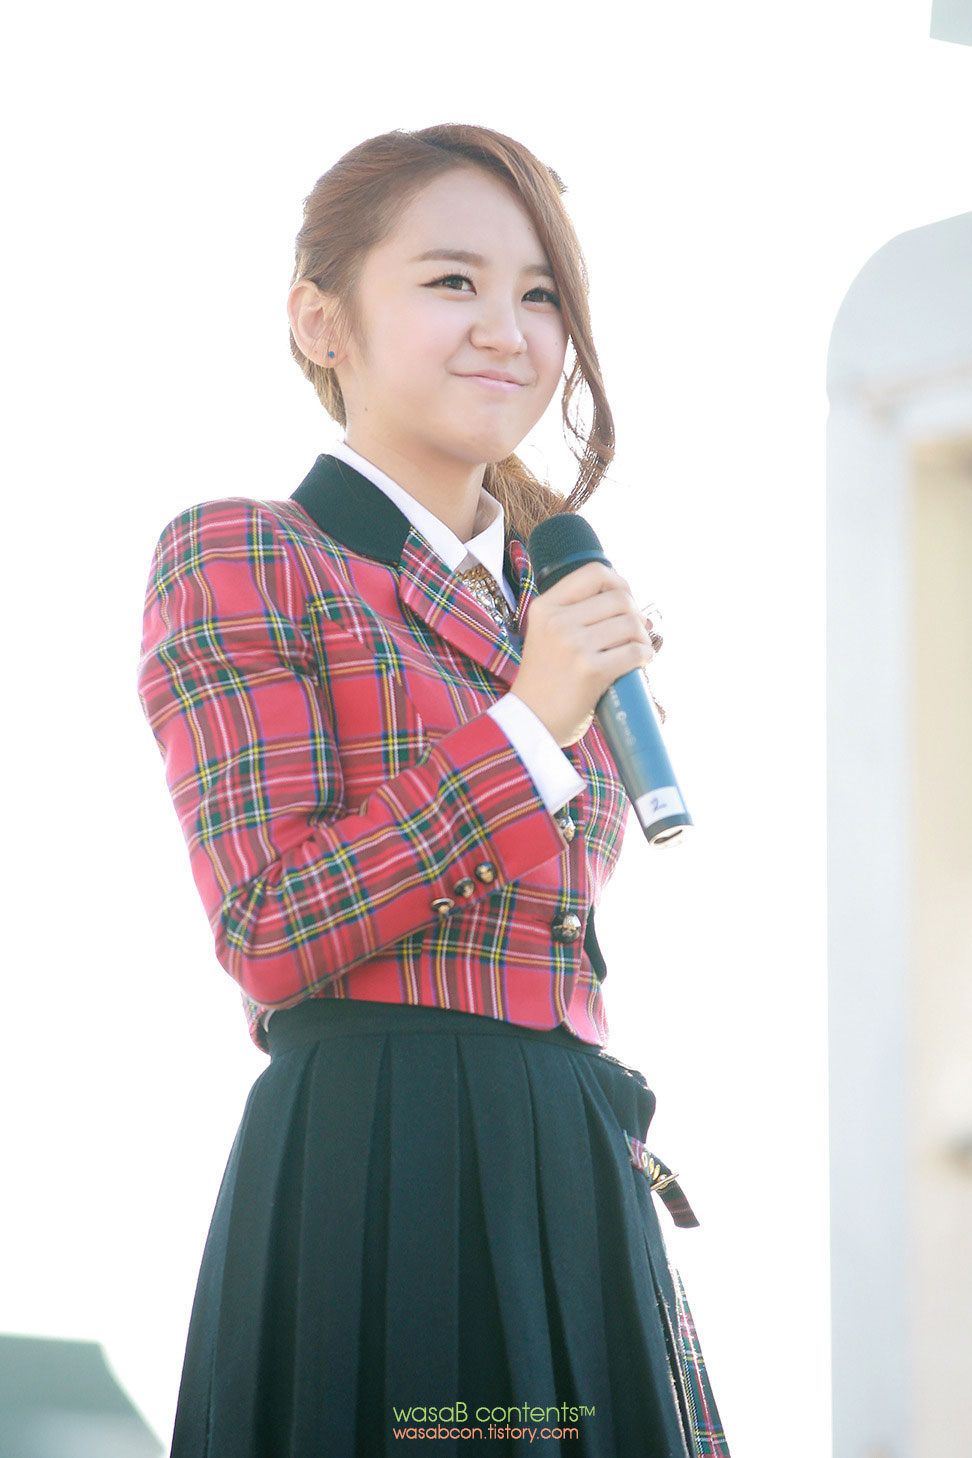 nca kpop singer - photo #36